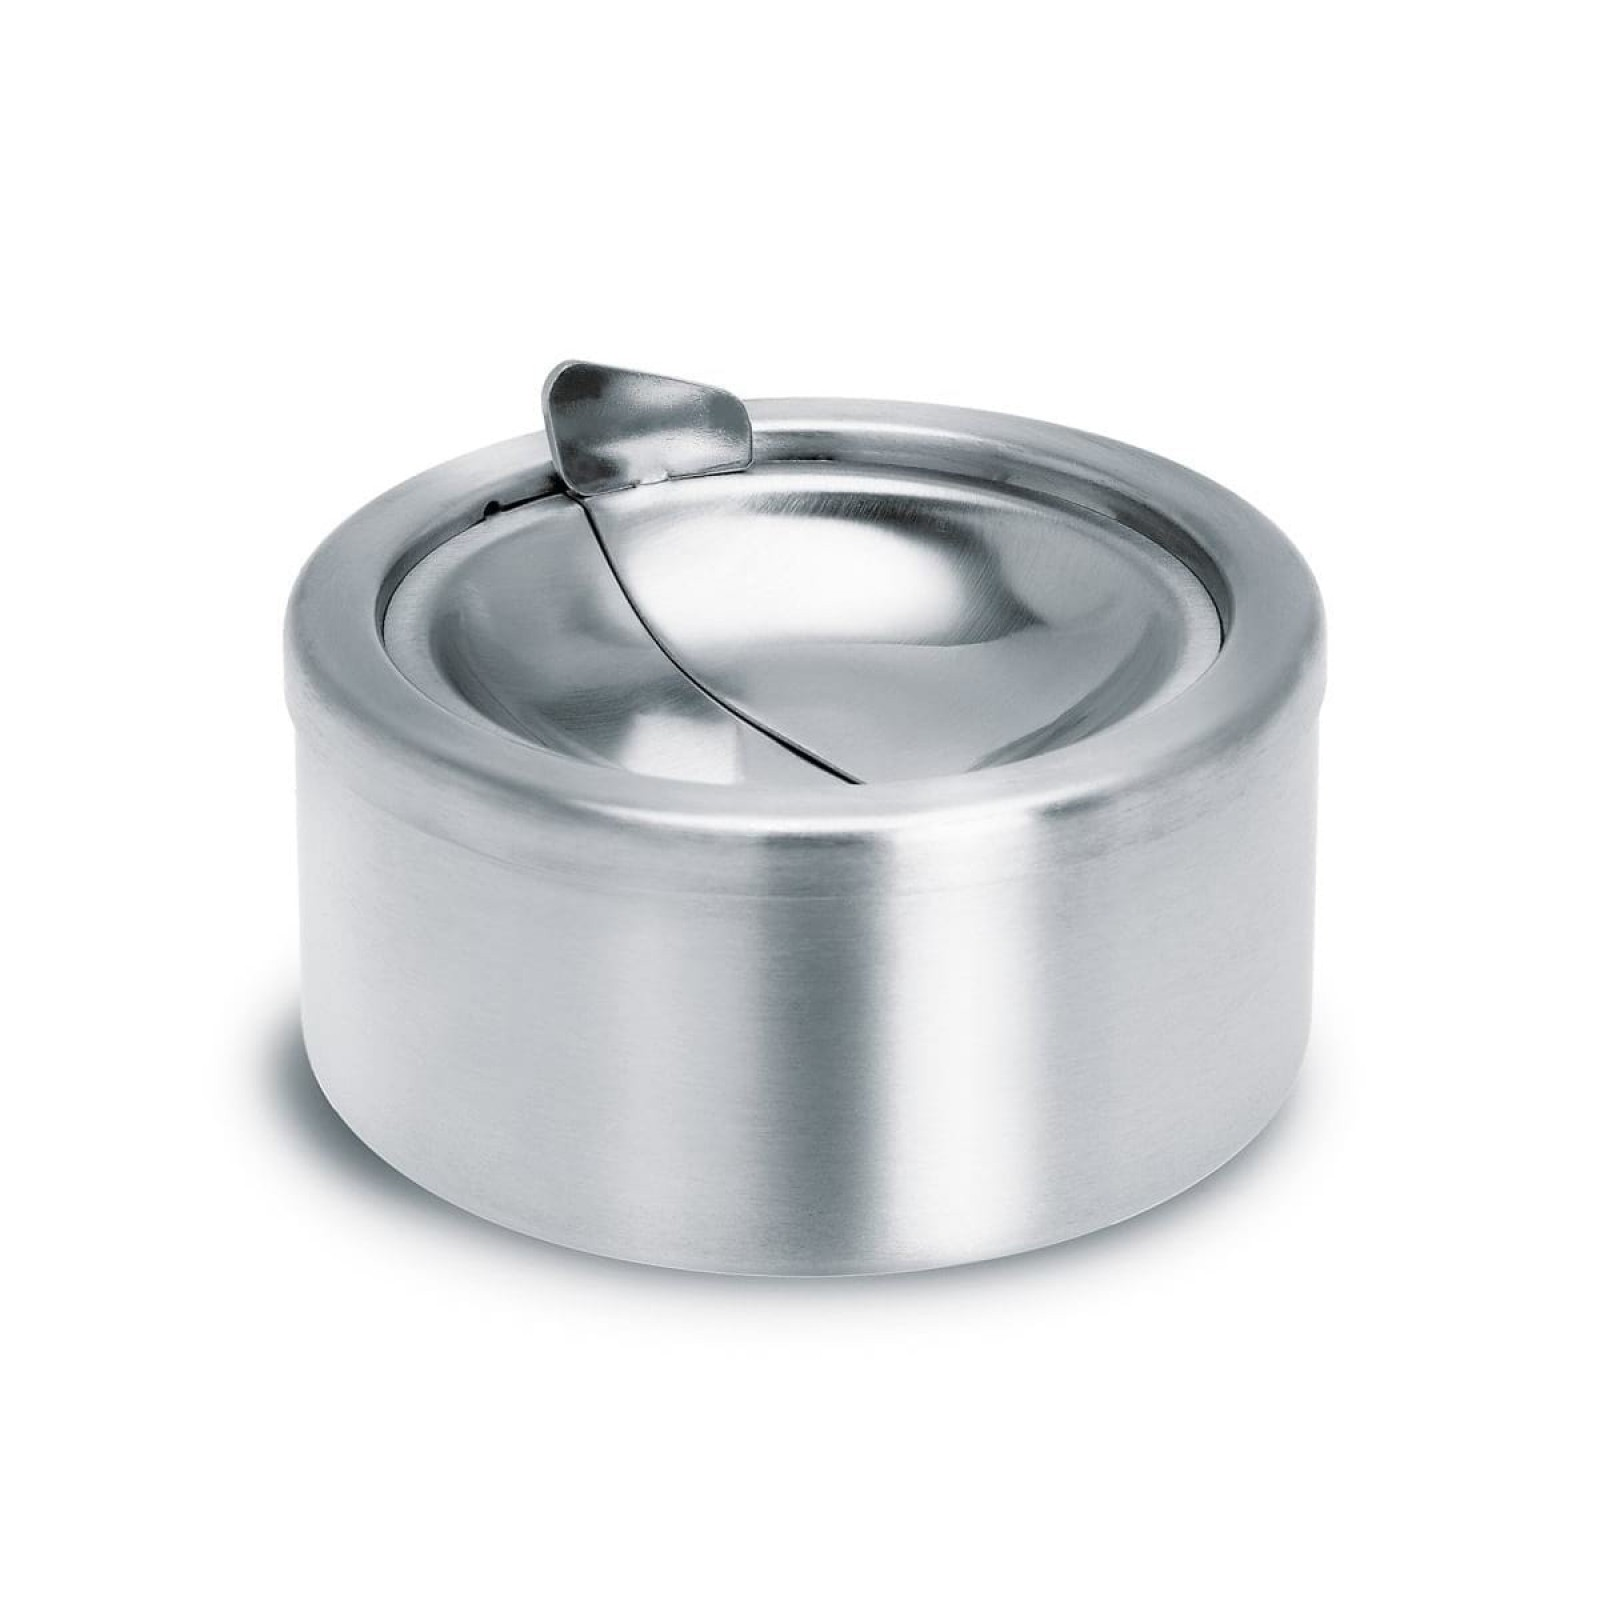 PATTY Ashtray with Lid (Stainless Steel Matt) - Blomus